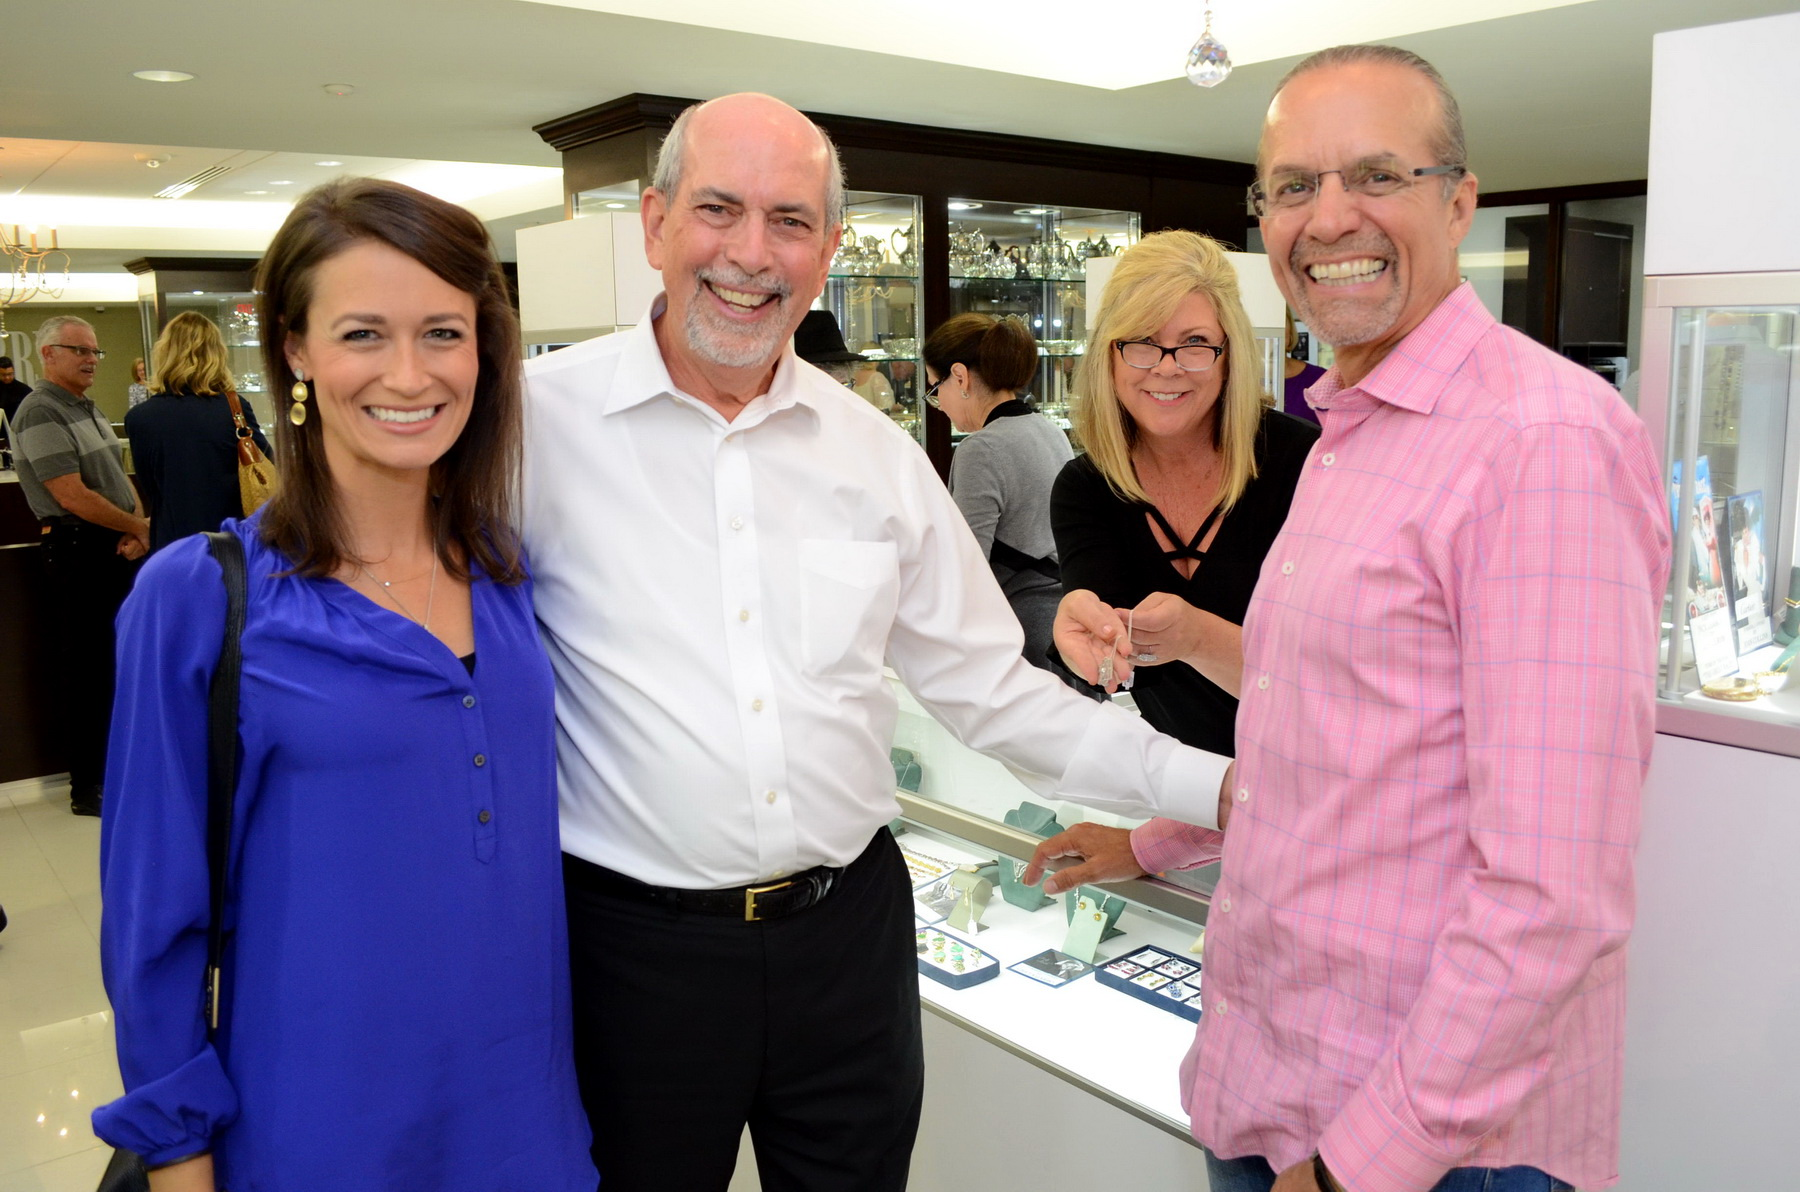 Morgan Petty, Ernest Perry, Julie Lopett and NASCAR legend Kyle Petty at the Sept. 13 Preview Party for a Celebrity & Designer Estate Sale at Perry's Fine, Antique & Estate Jewelry. The sale continues from 10 a.m. to 7 p.m. Sept. 14.   All photos by Paul Williams III.